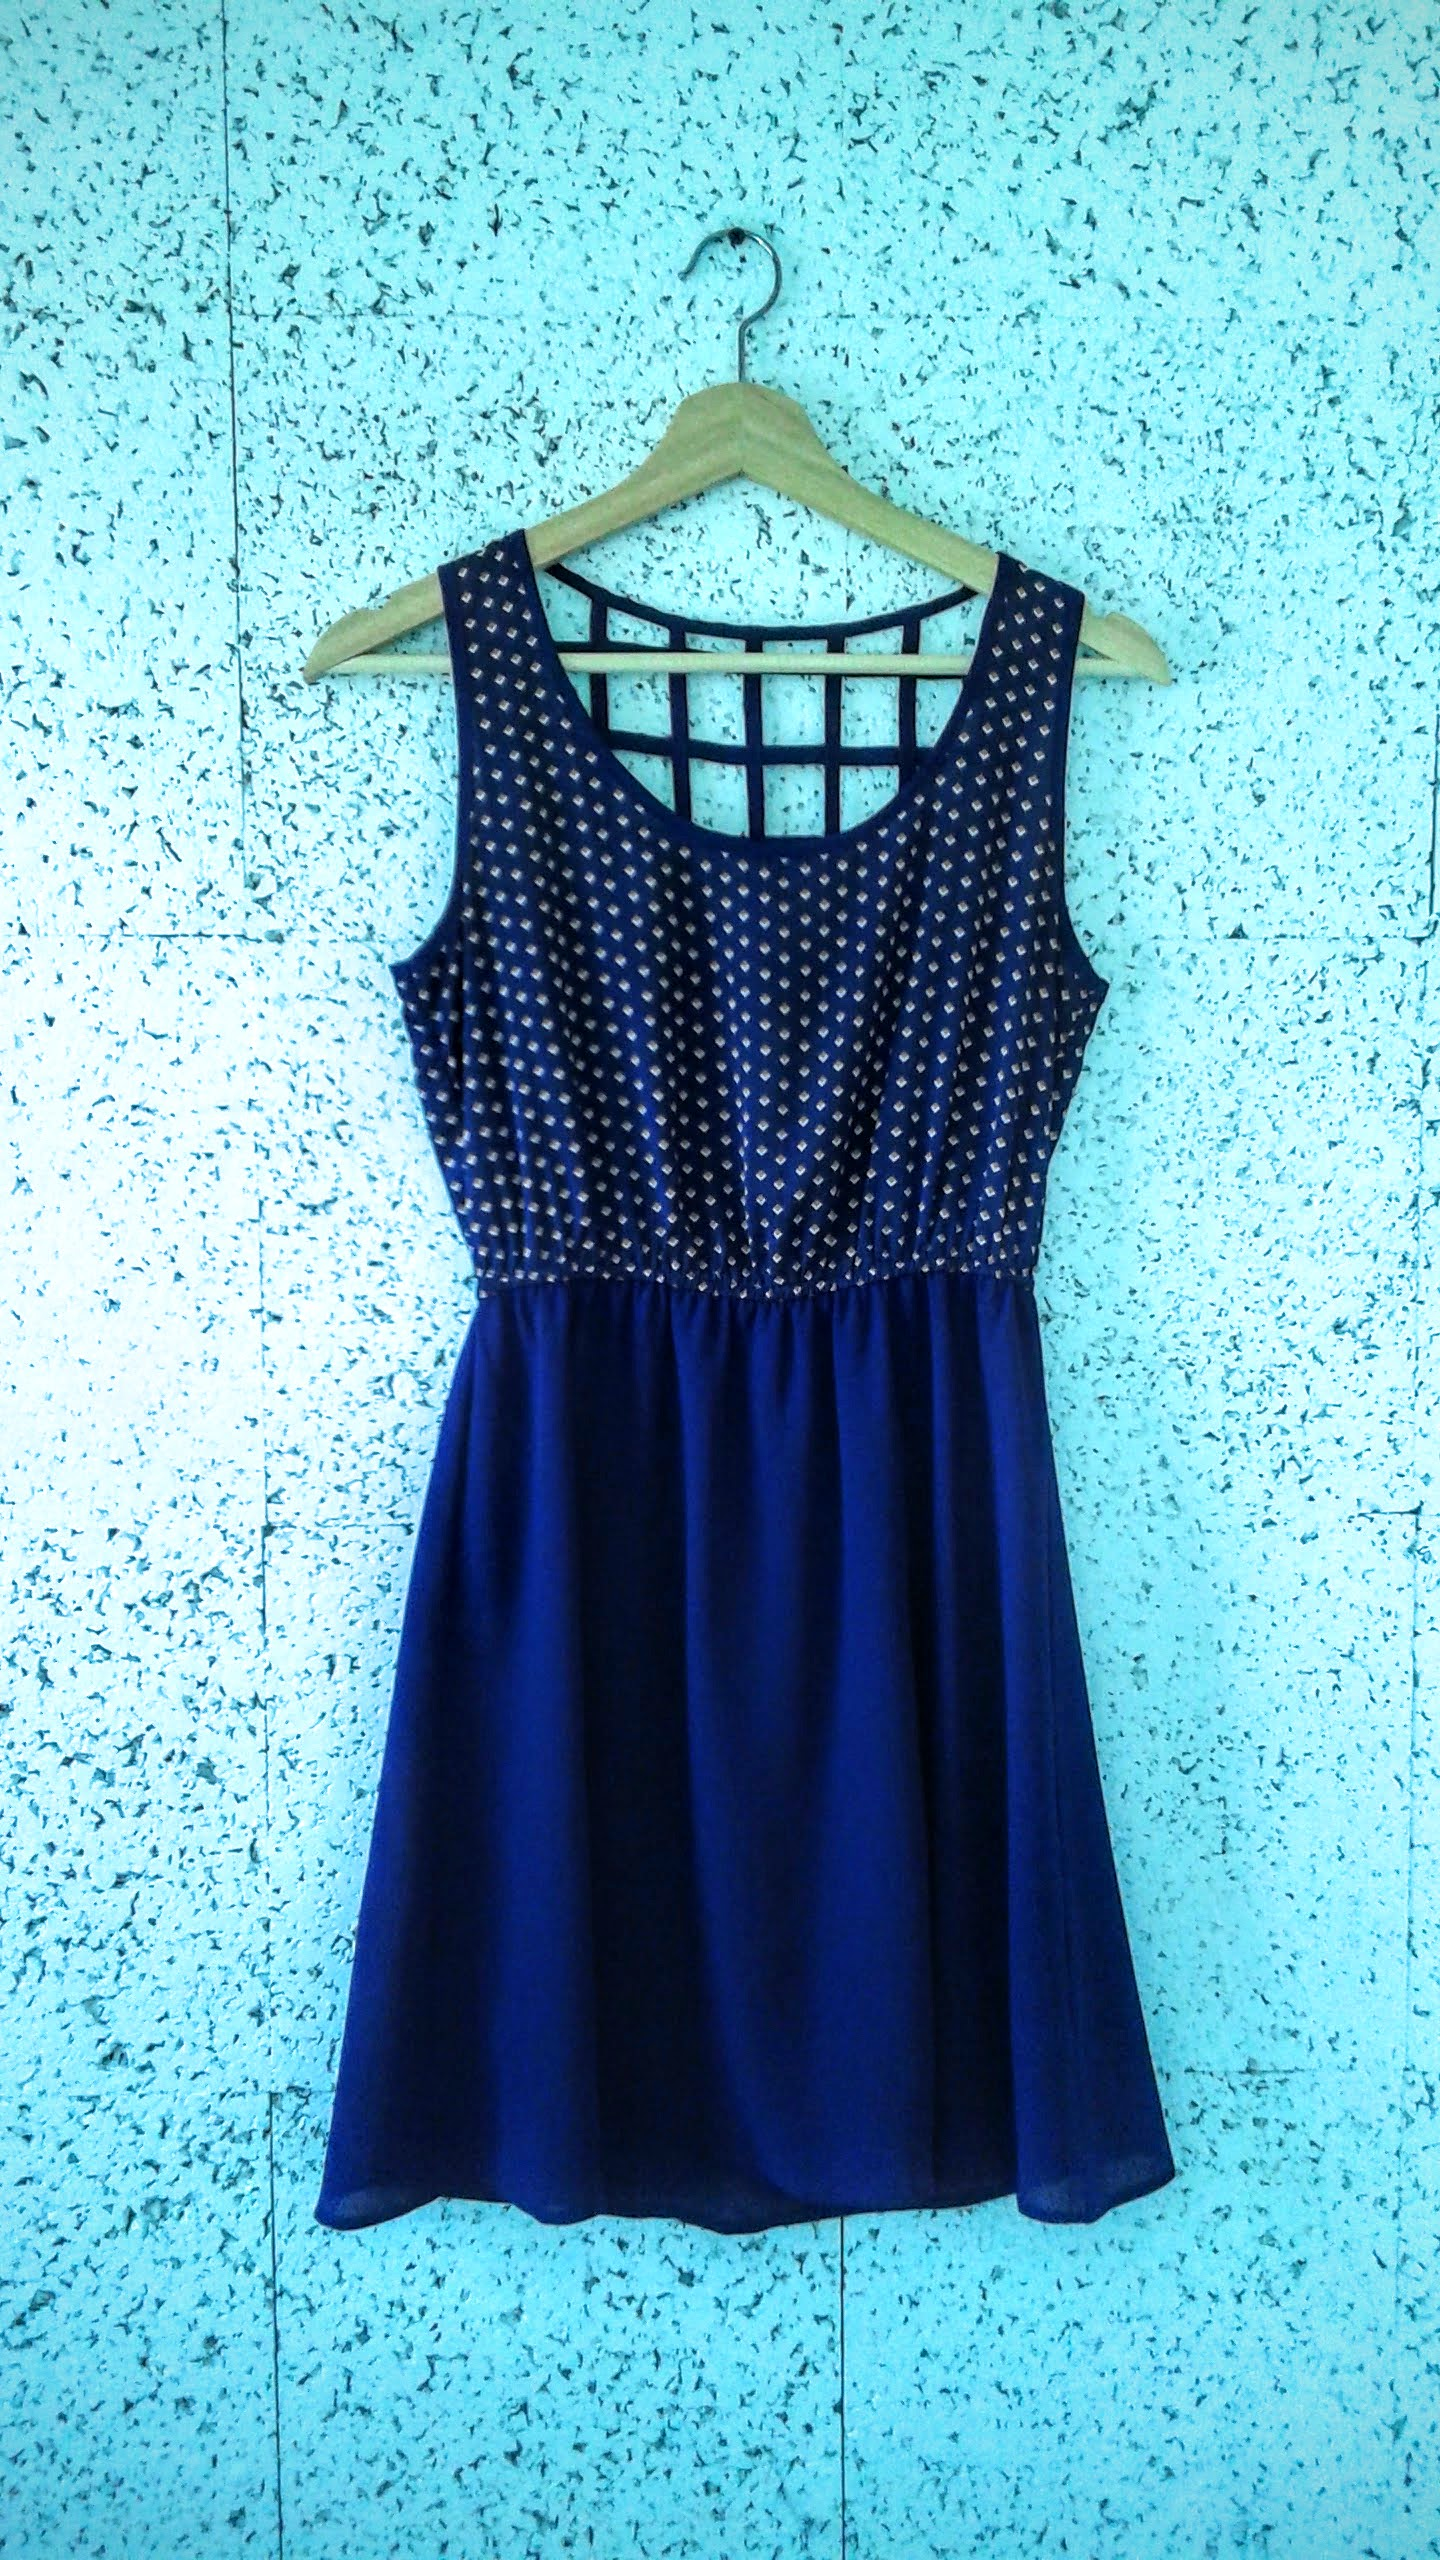 Blu Pepper  dress; Size S, $28